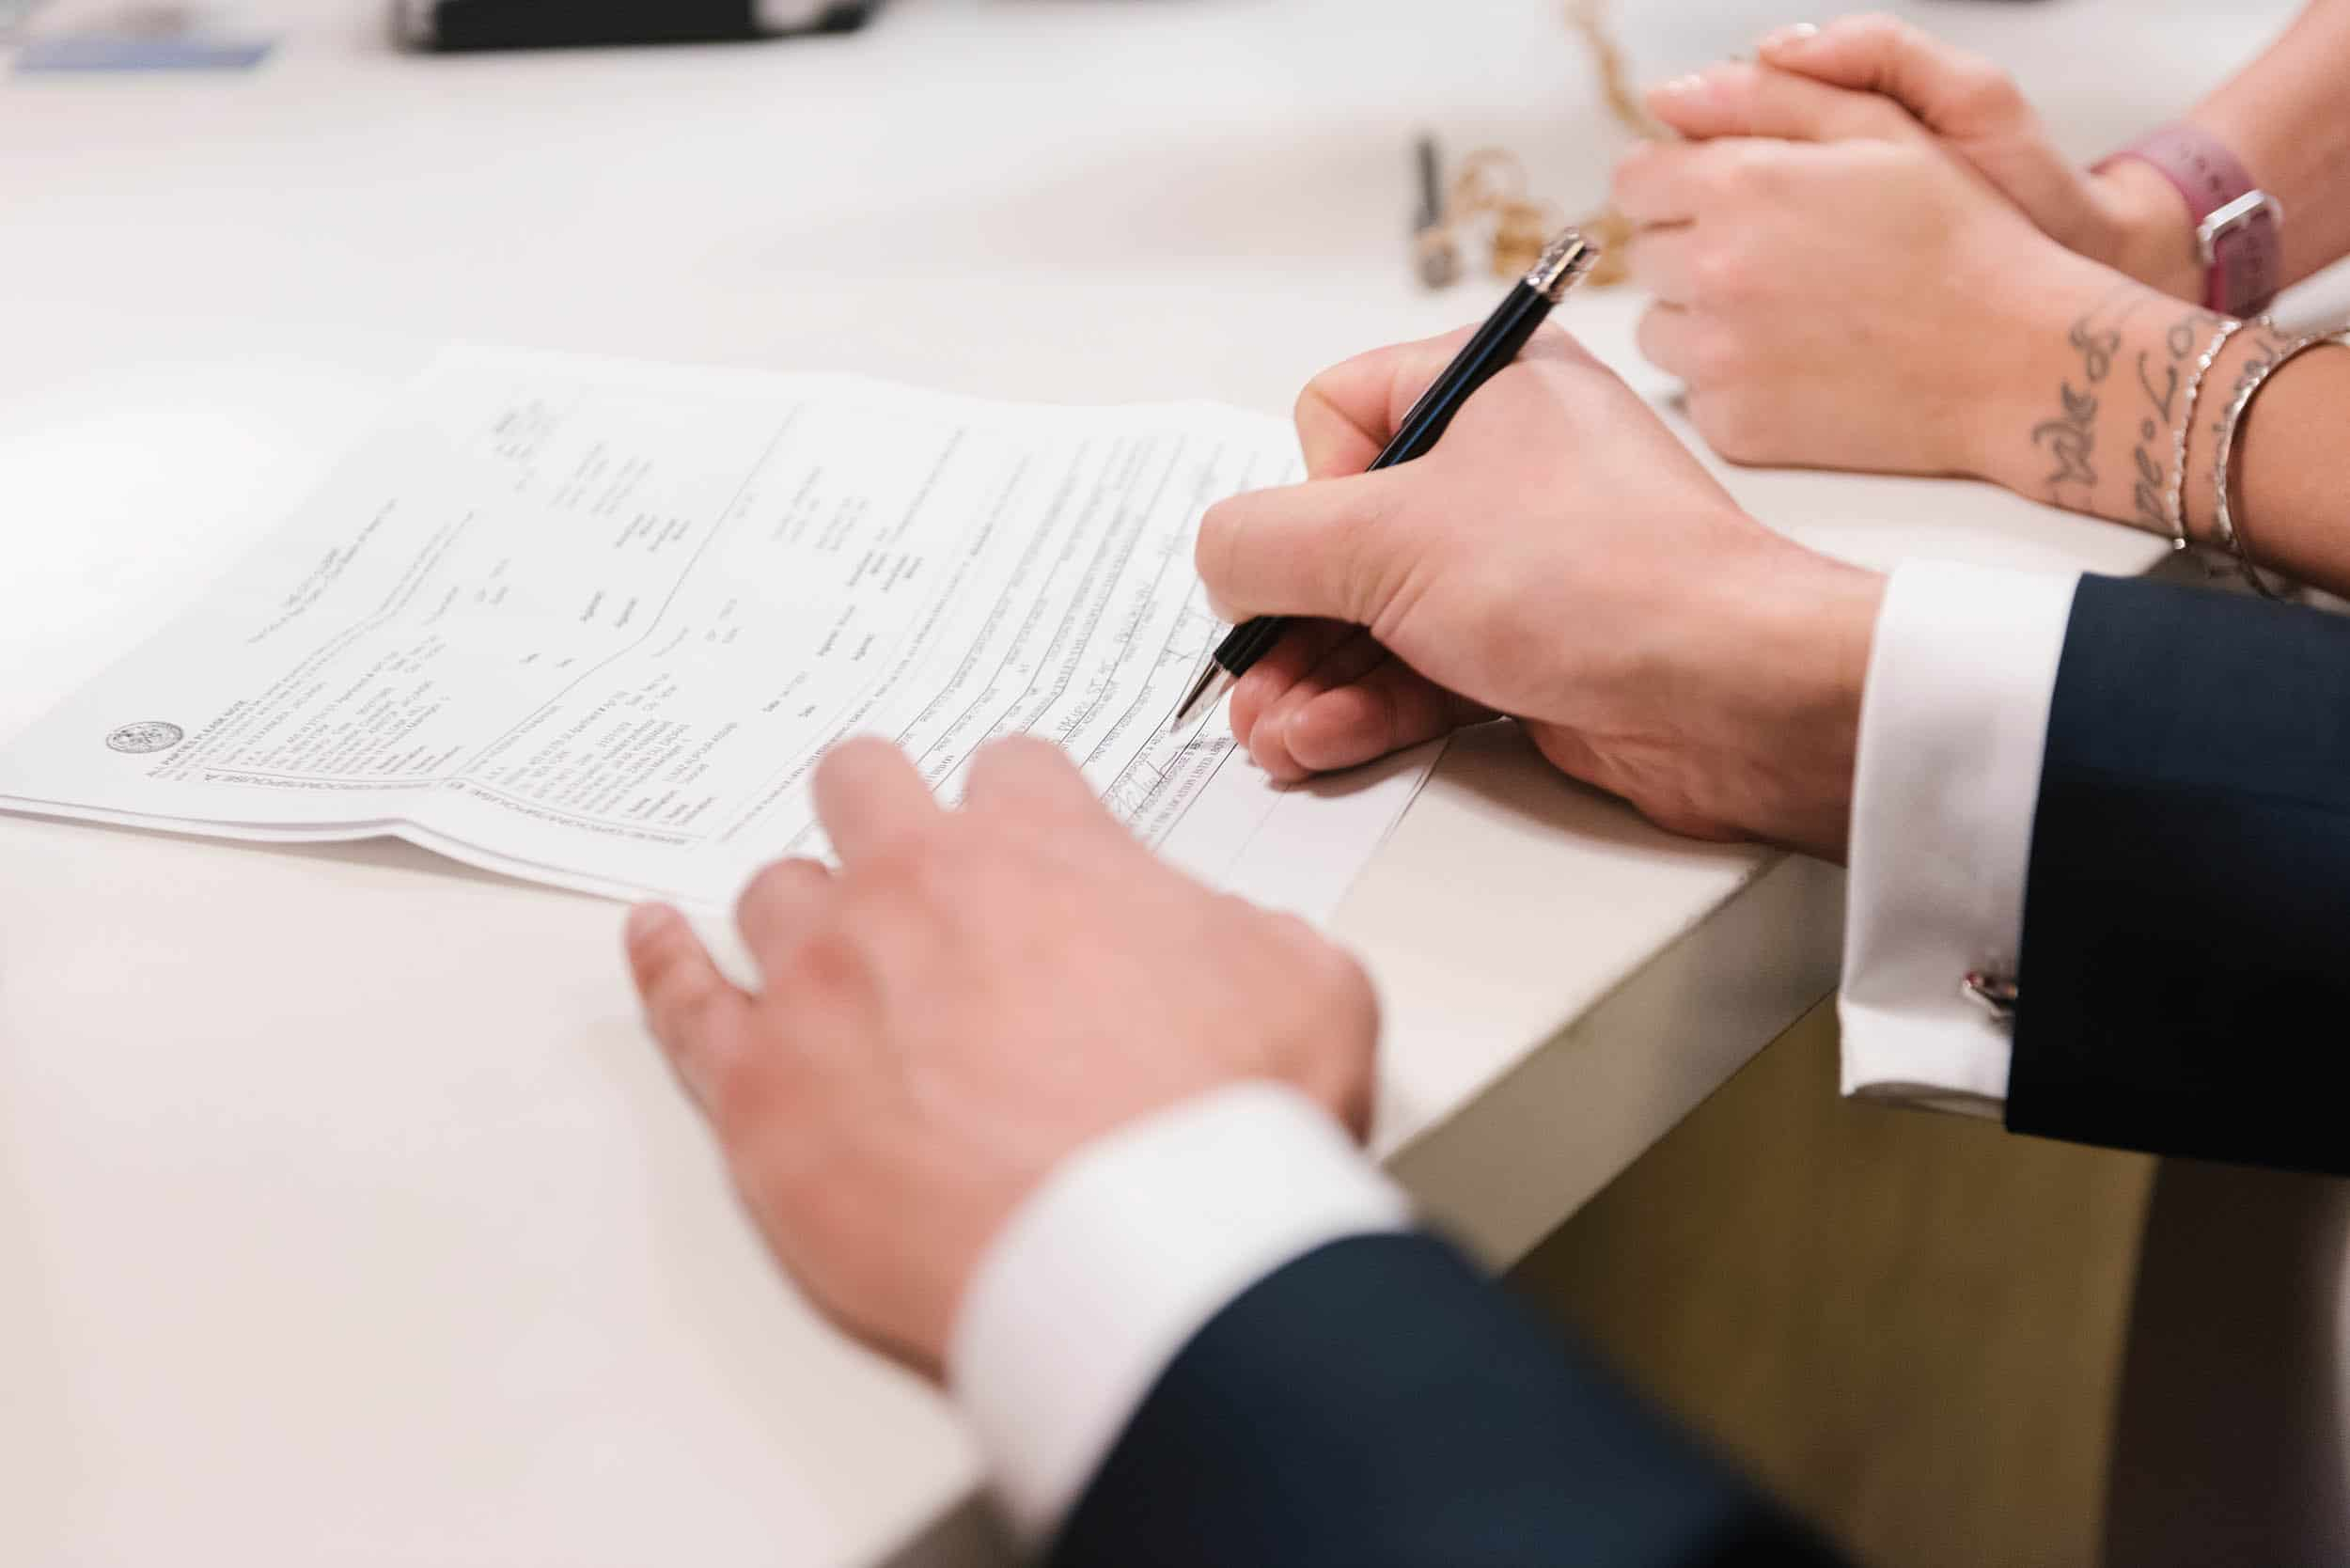 how to get an extended marriage certificate in NYC - getting married in NYC for foreigners